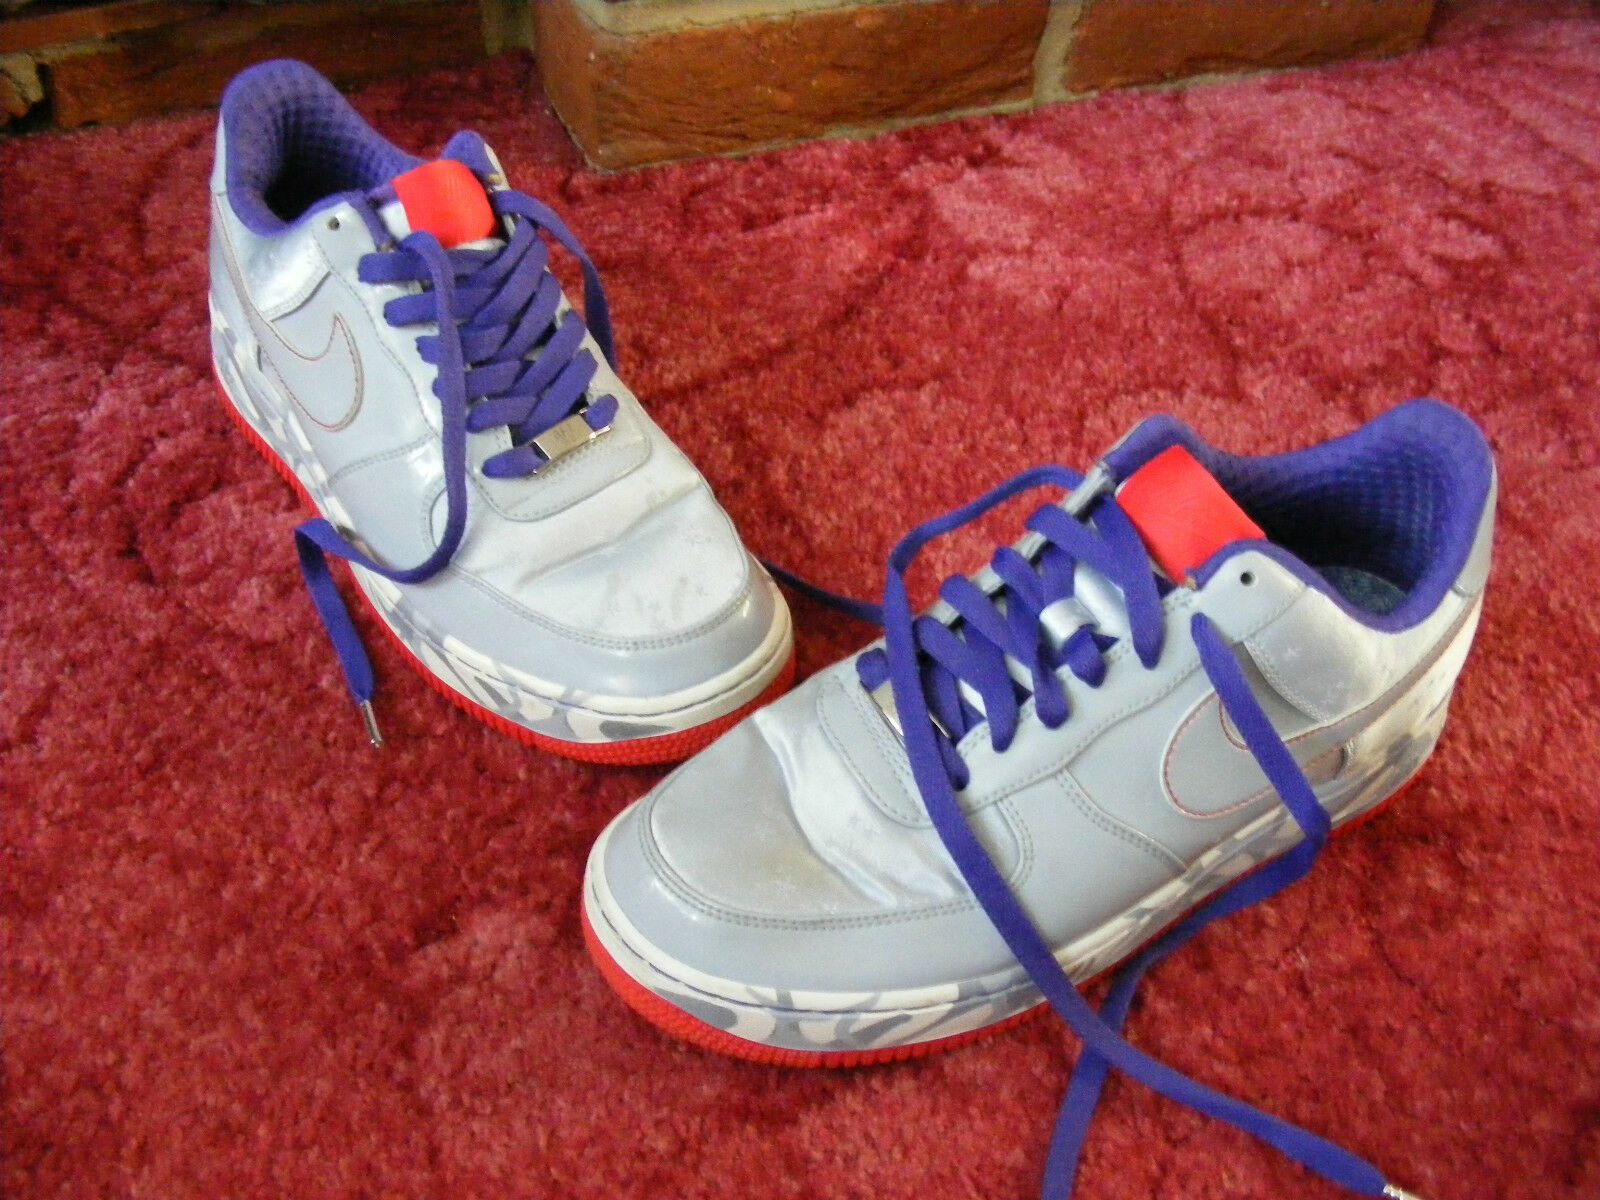 Womens Girls Nike Air Force XXV AF-1 '82 Trainers Shoes US 8.5 1/2